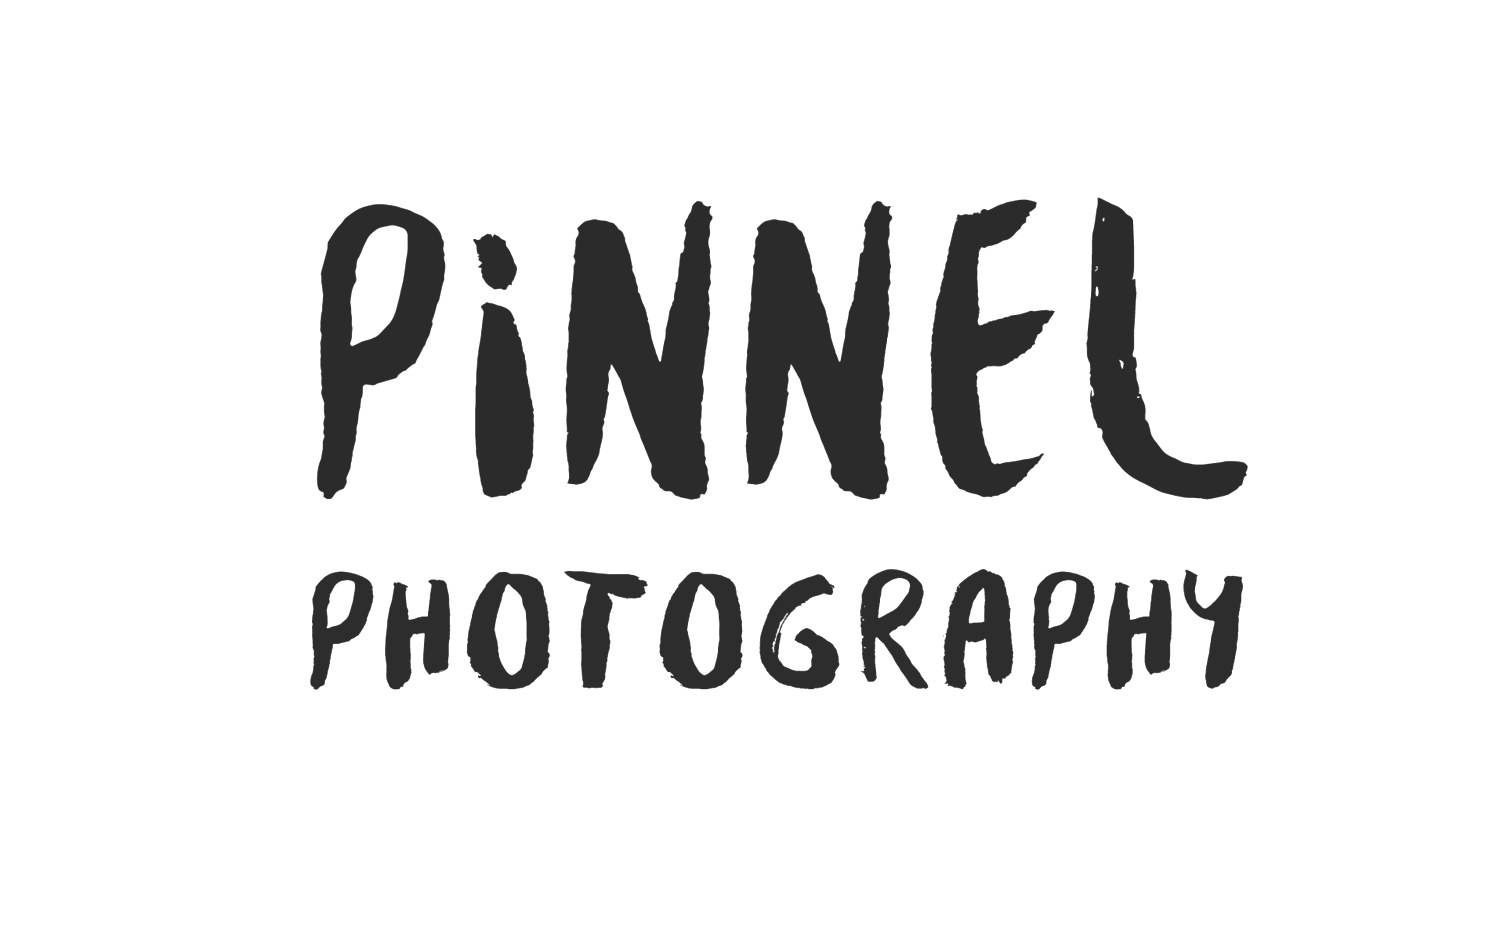 PINNEL PHOTOGRAPHY